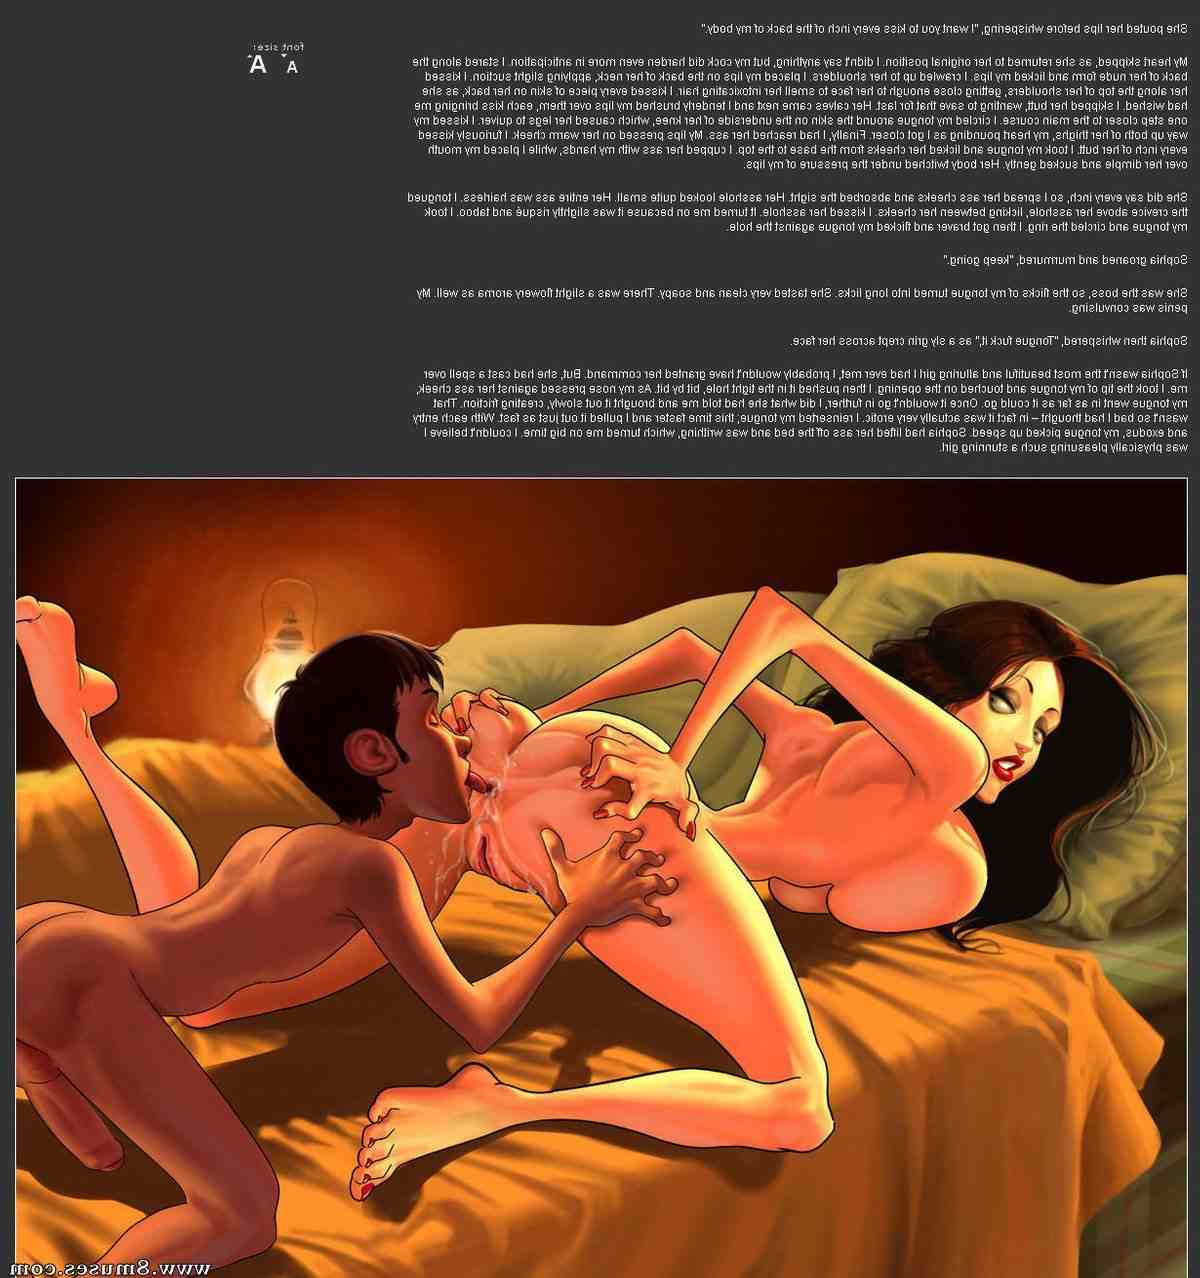 JAB-Comics/A-Blizzard-Night-of-Firsts A_Blizzard__Night_of_Firsts__8muses_-_Sex_and_Porn_Comics_31.jpg